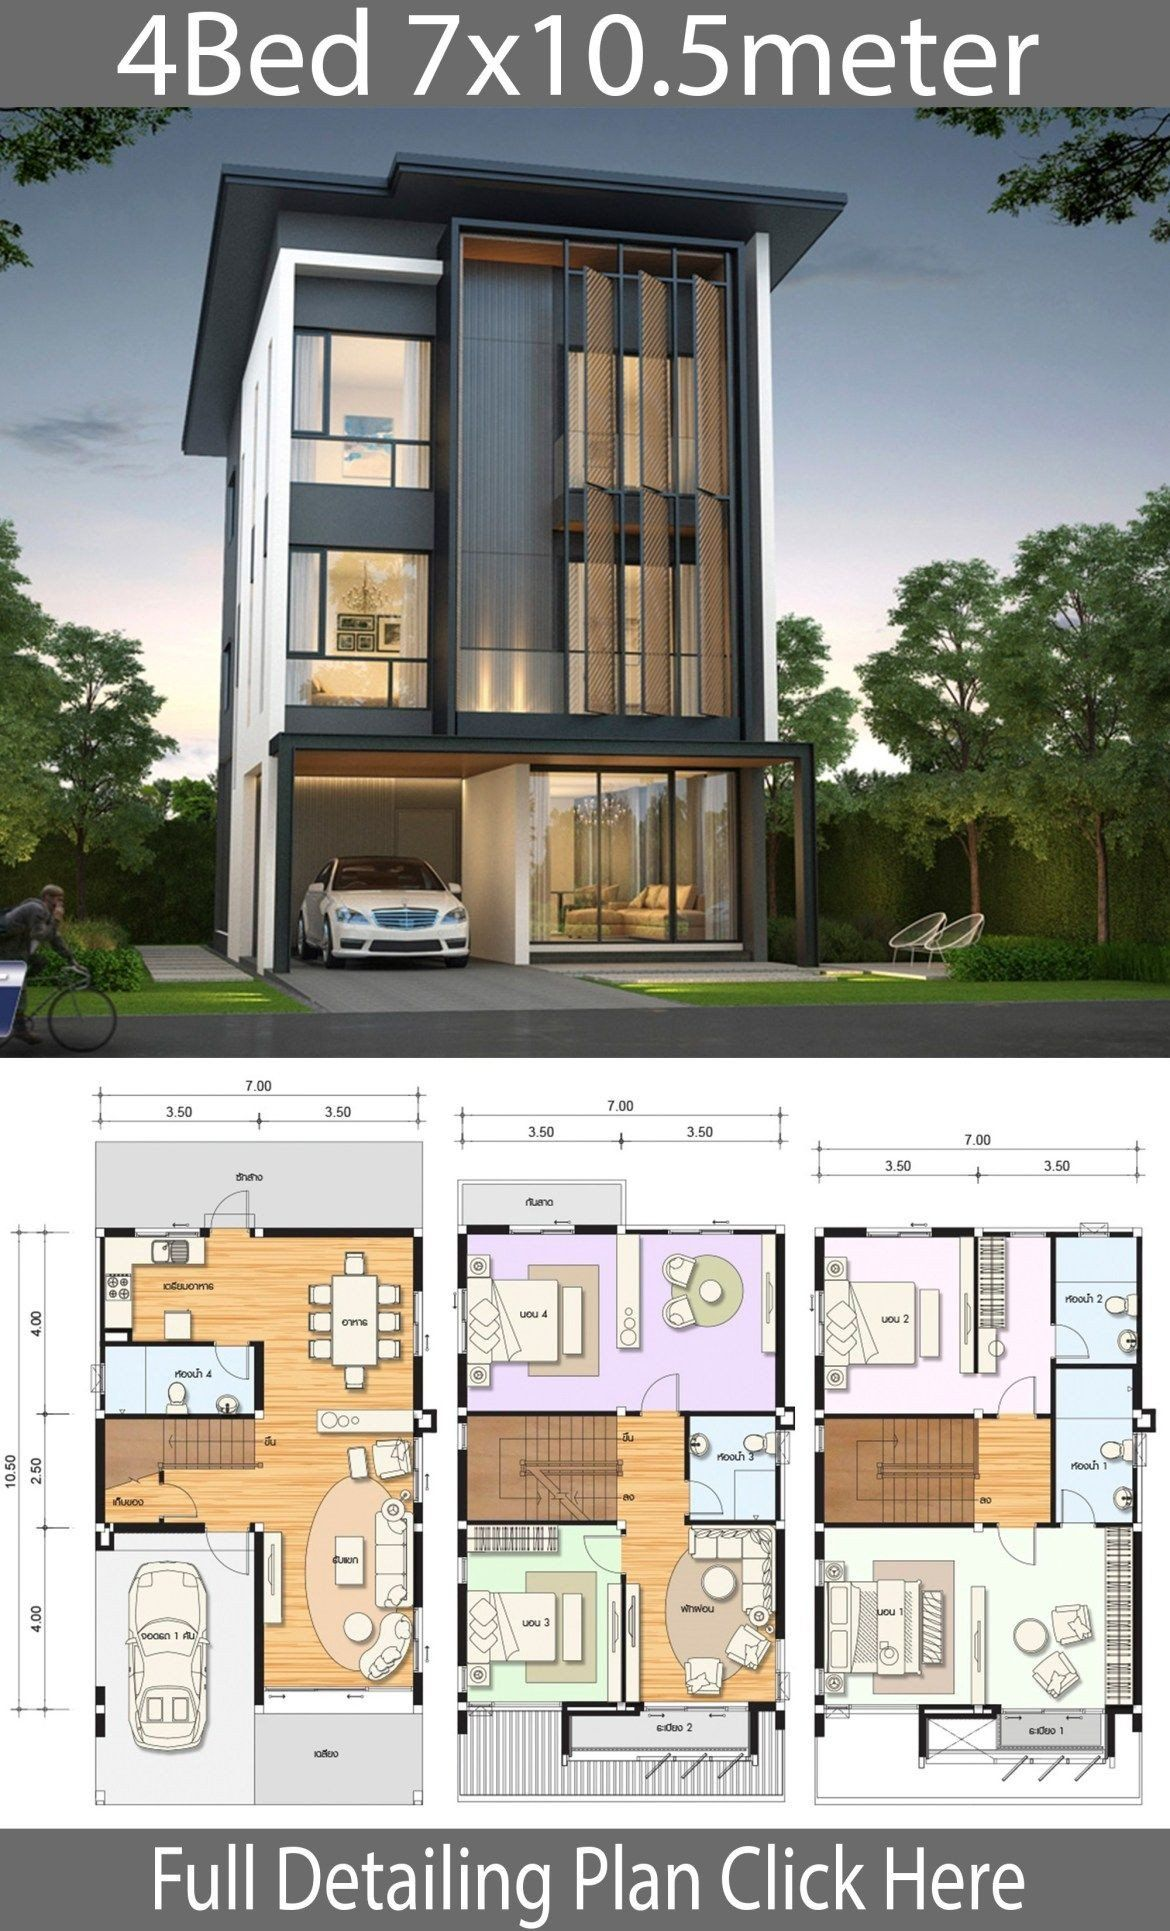 Modern House Designs And Plans House Design Plan 7x10 5m With 4 Bedrooms Narrow House Plans Minimalist House Design House Designs Exterior